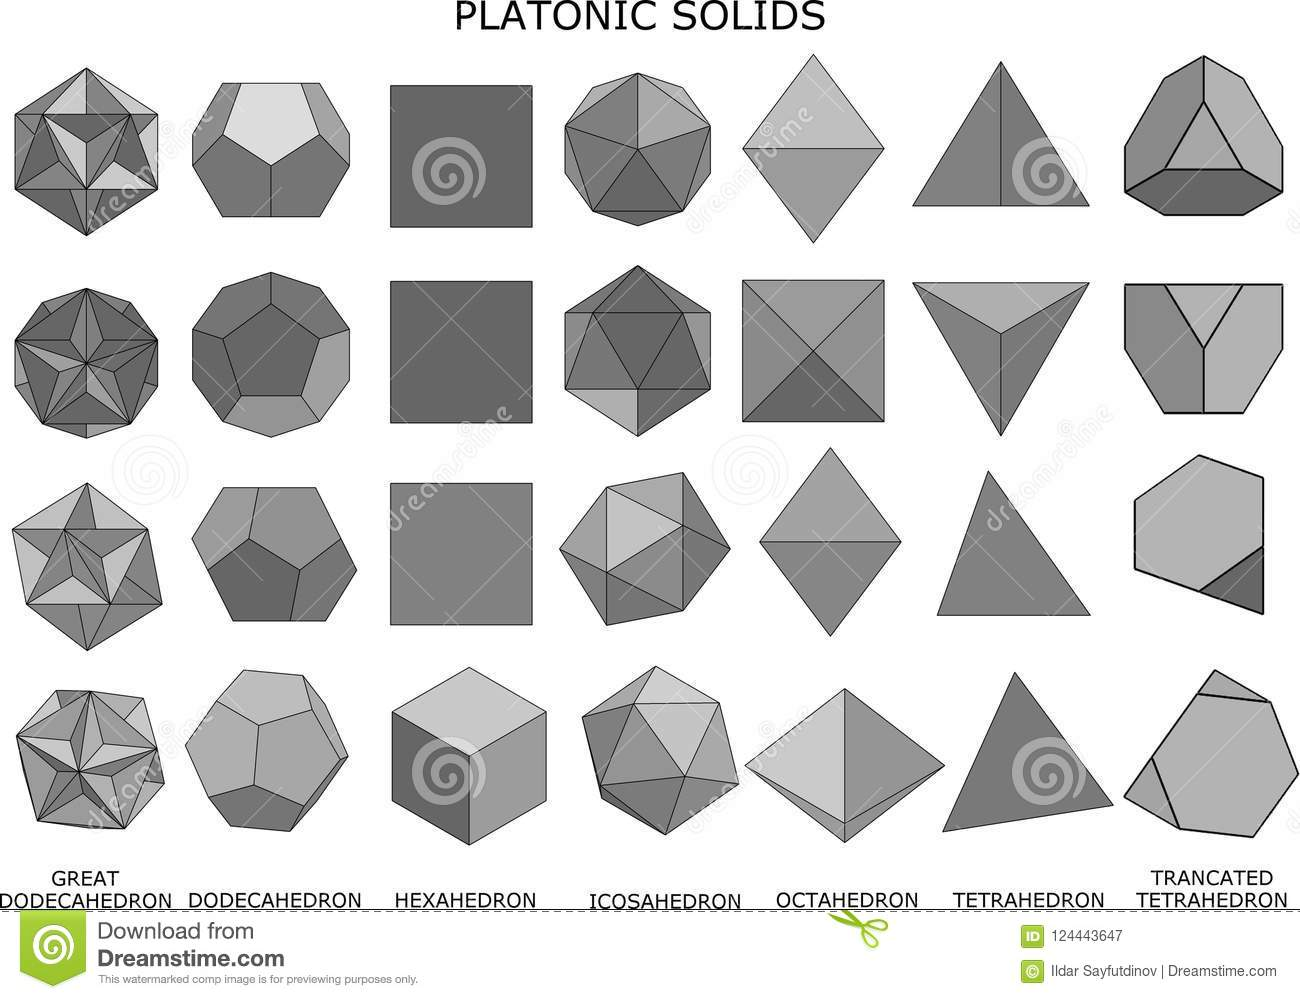 3d Illustration Of Platonic Solids Stock Illustration Illustration